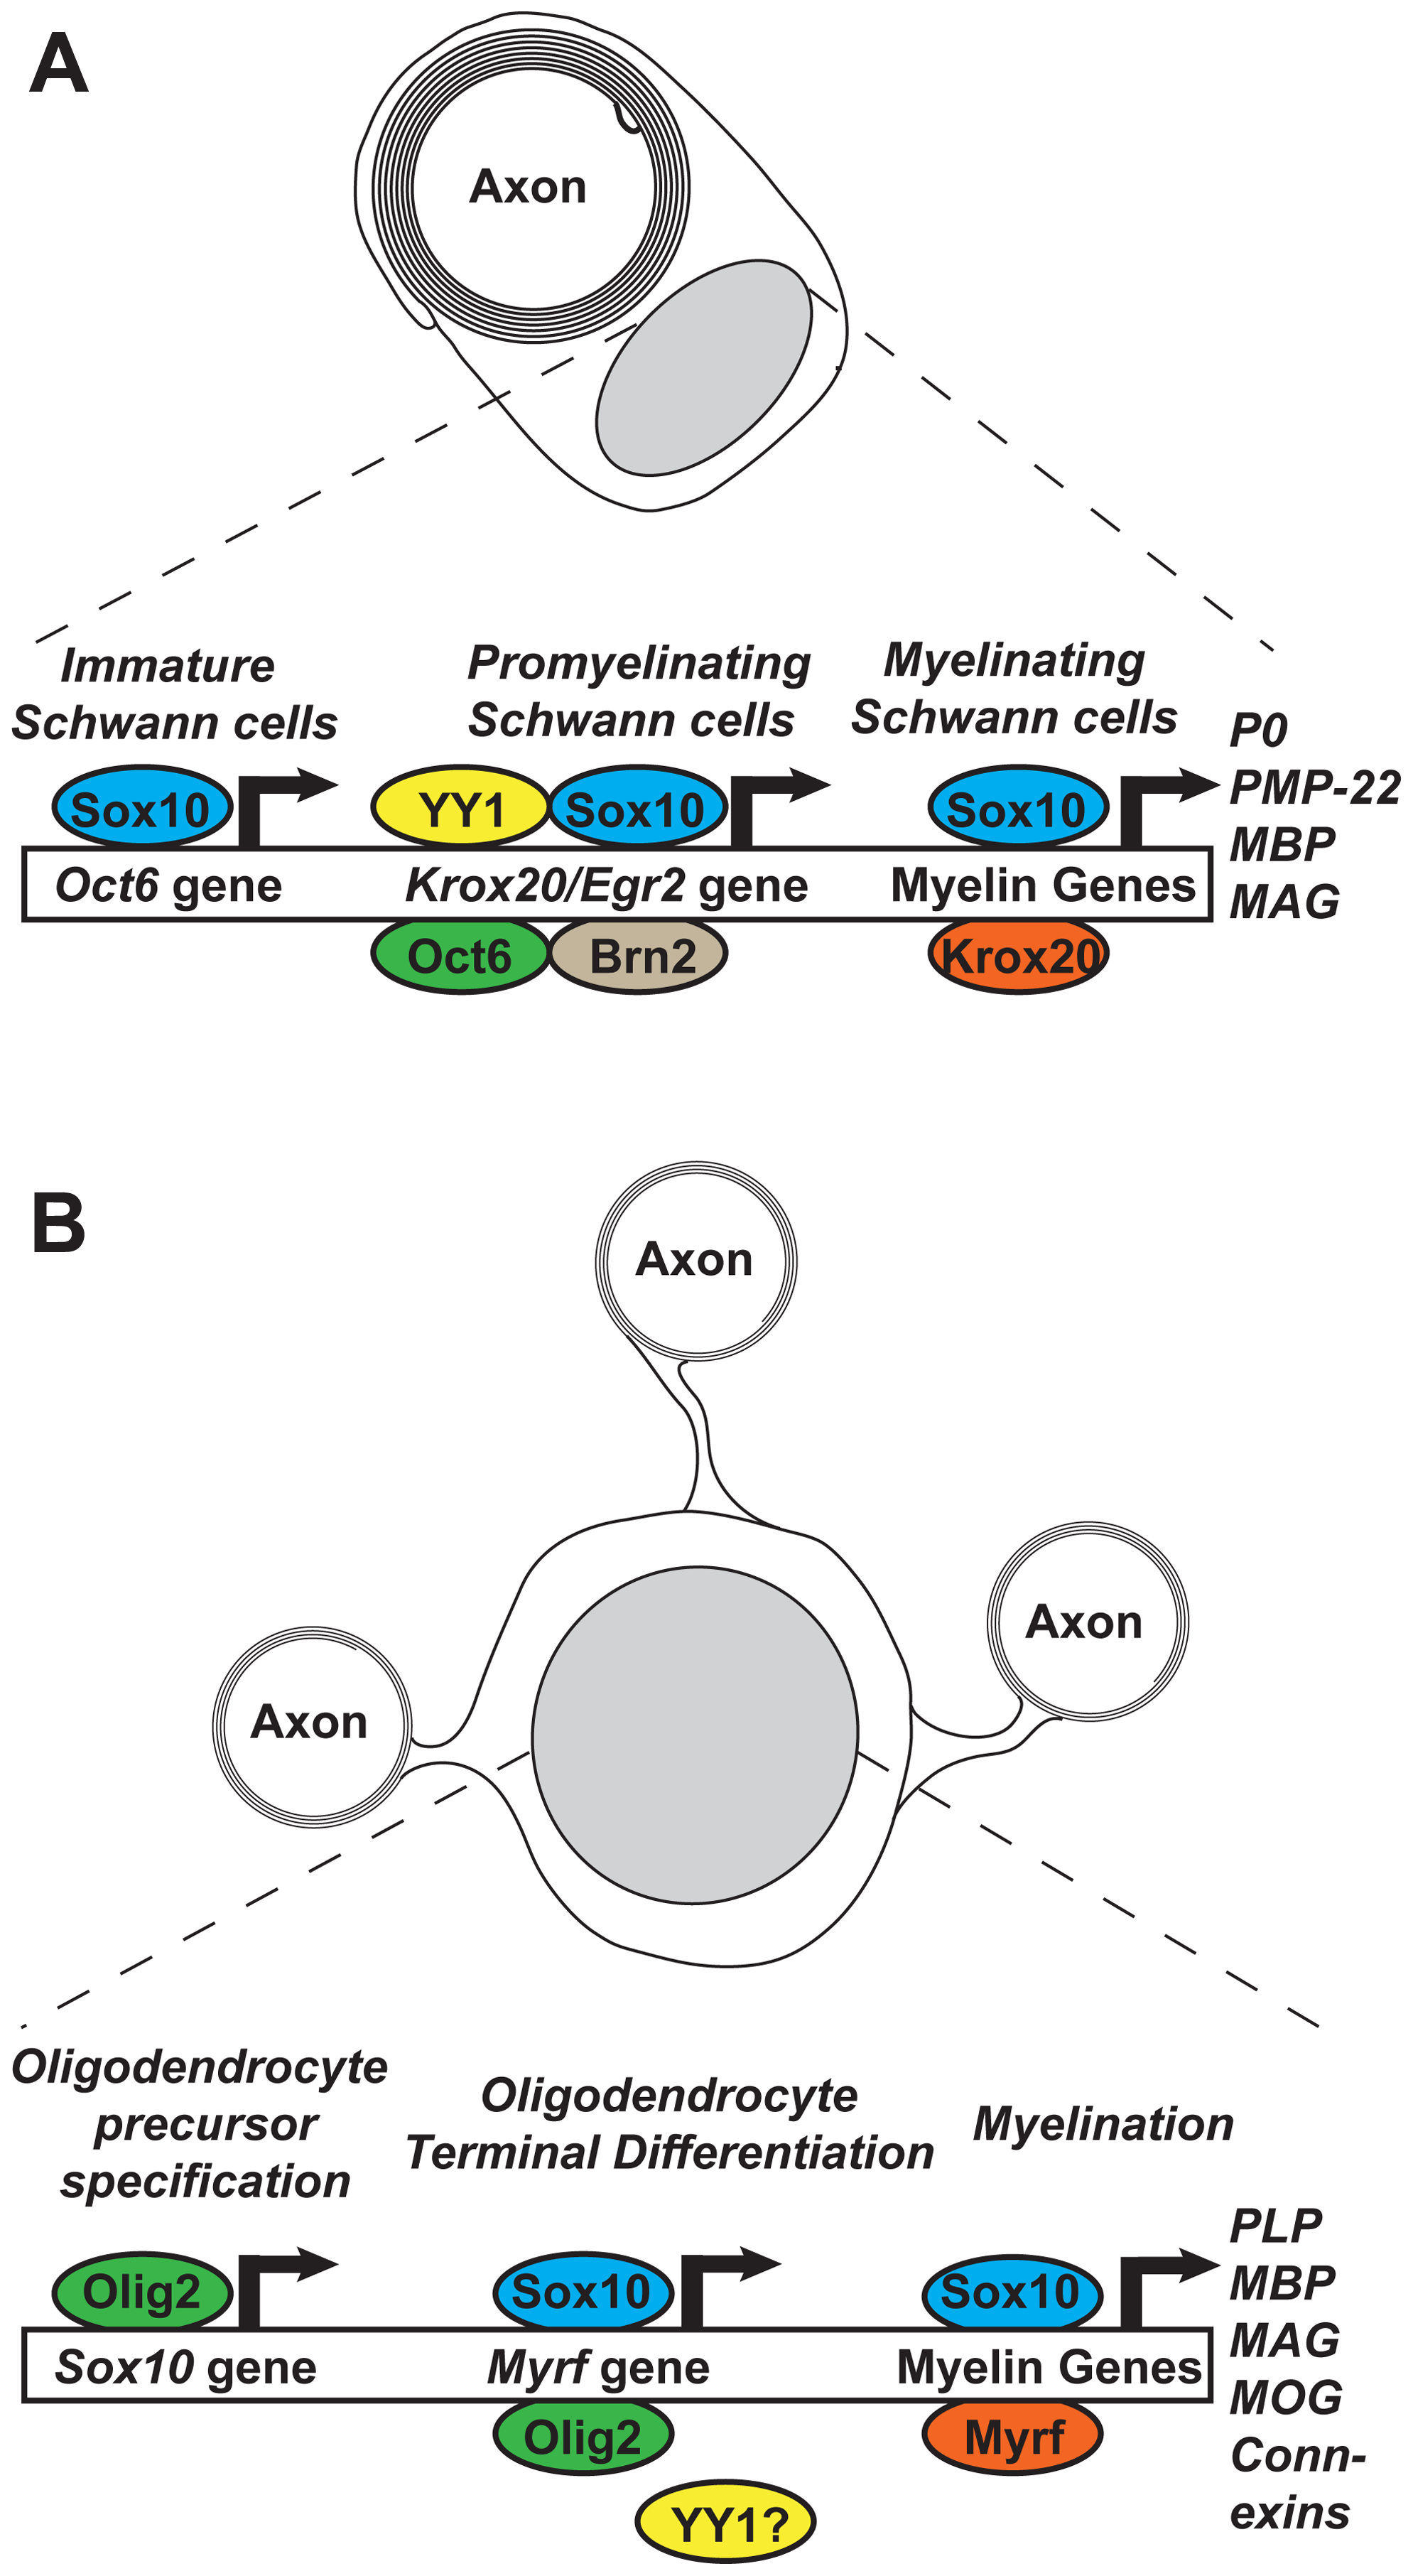 Feed-forward transcriptional networks regulating myelination in Schwann cells and oligodendrocytes.